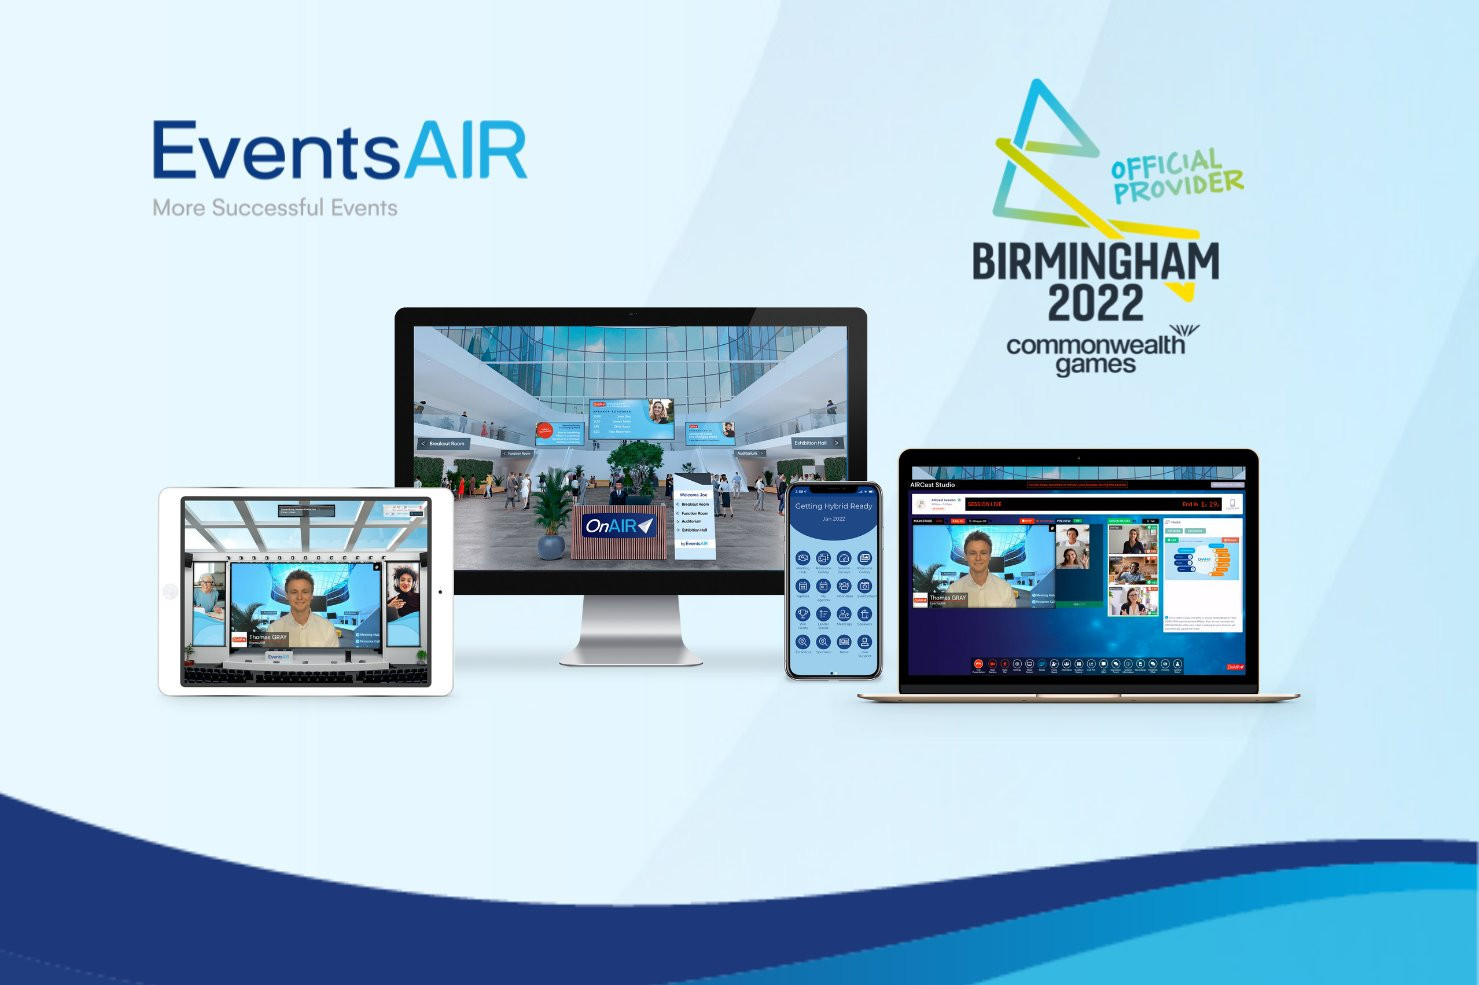 EventsAIR named Birmingham 2022 Commonwealth Games' latest official provider